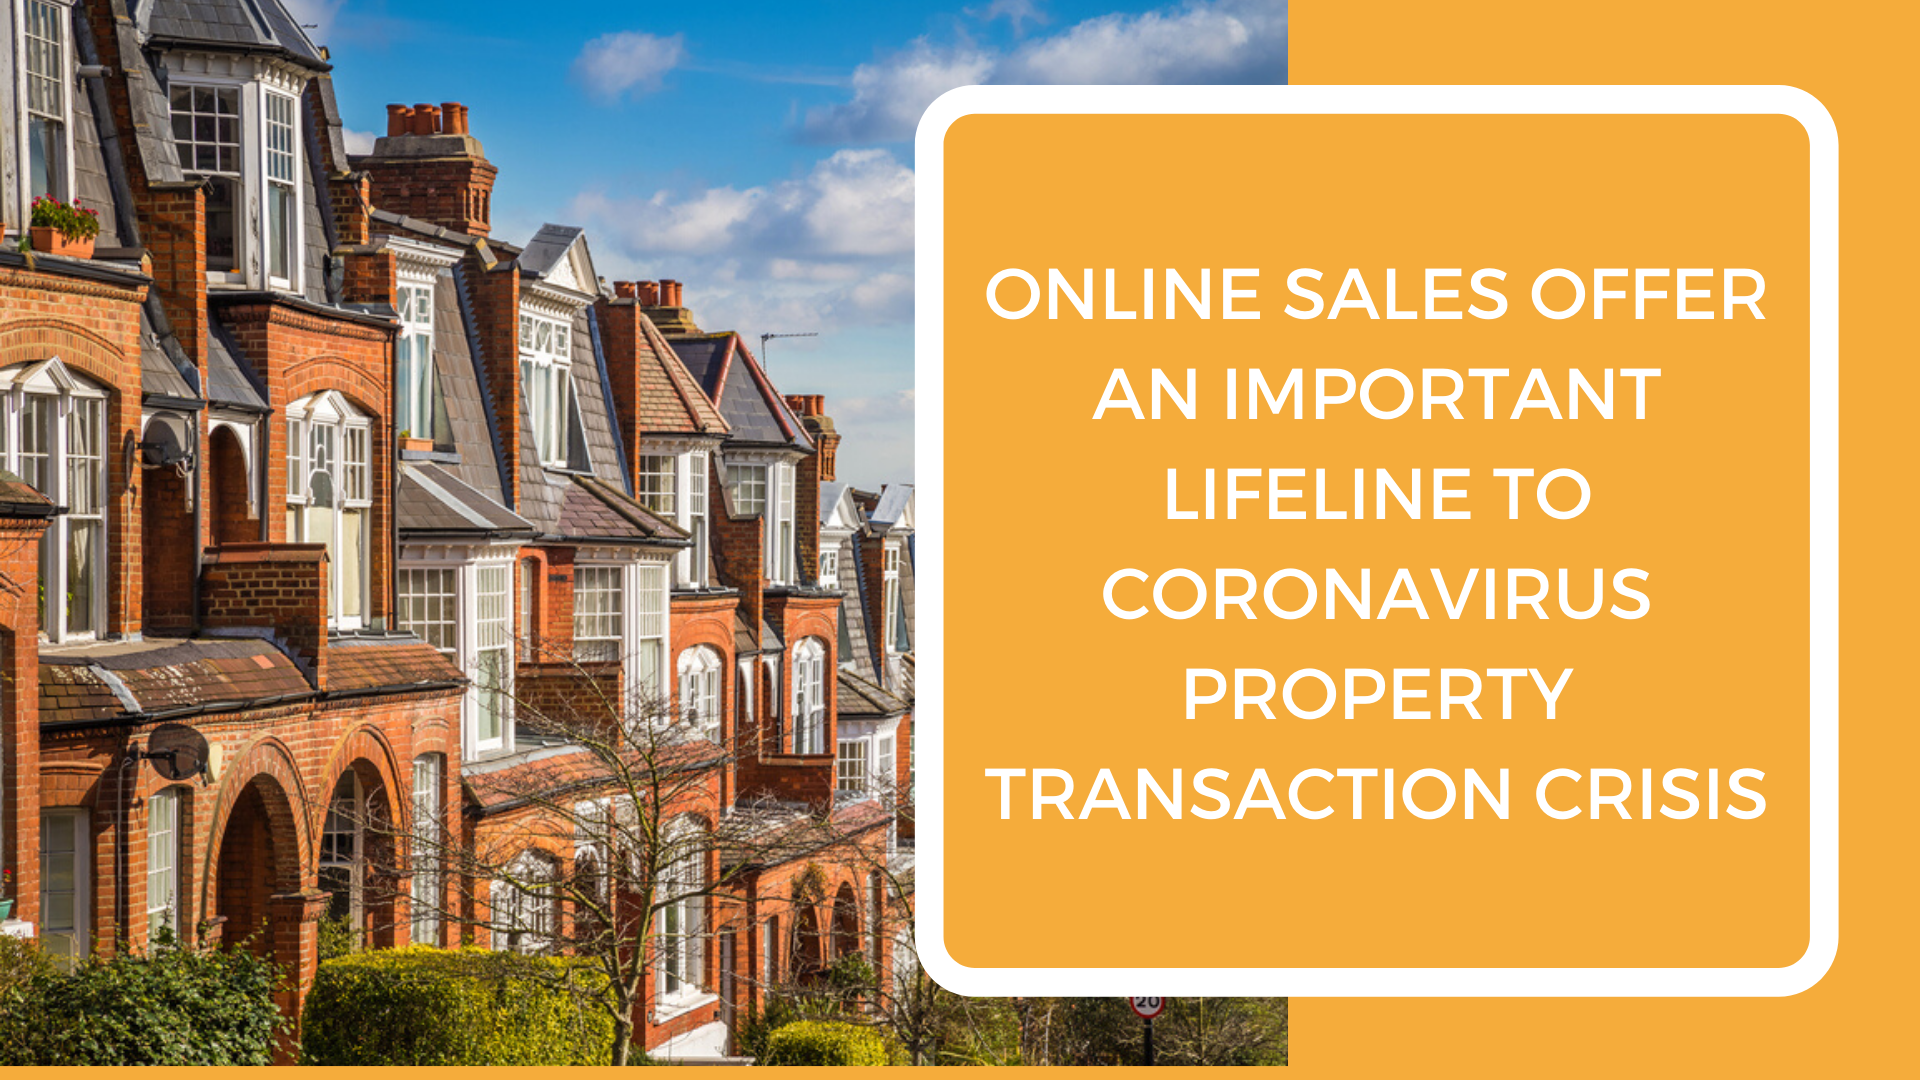 Online sales offer an important lifeline to Coronavirus property transaction crisis, according to Probate Property Hub